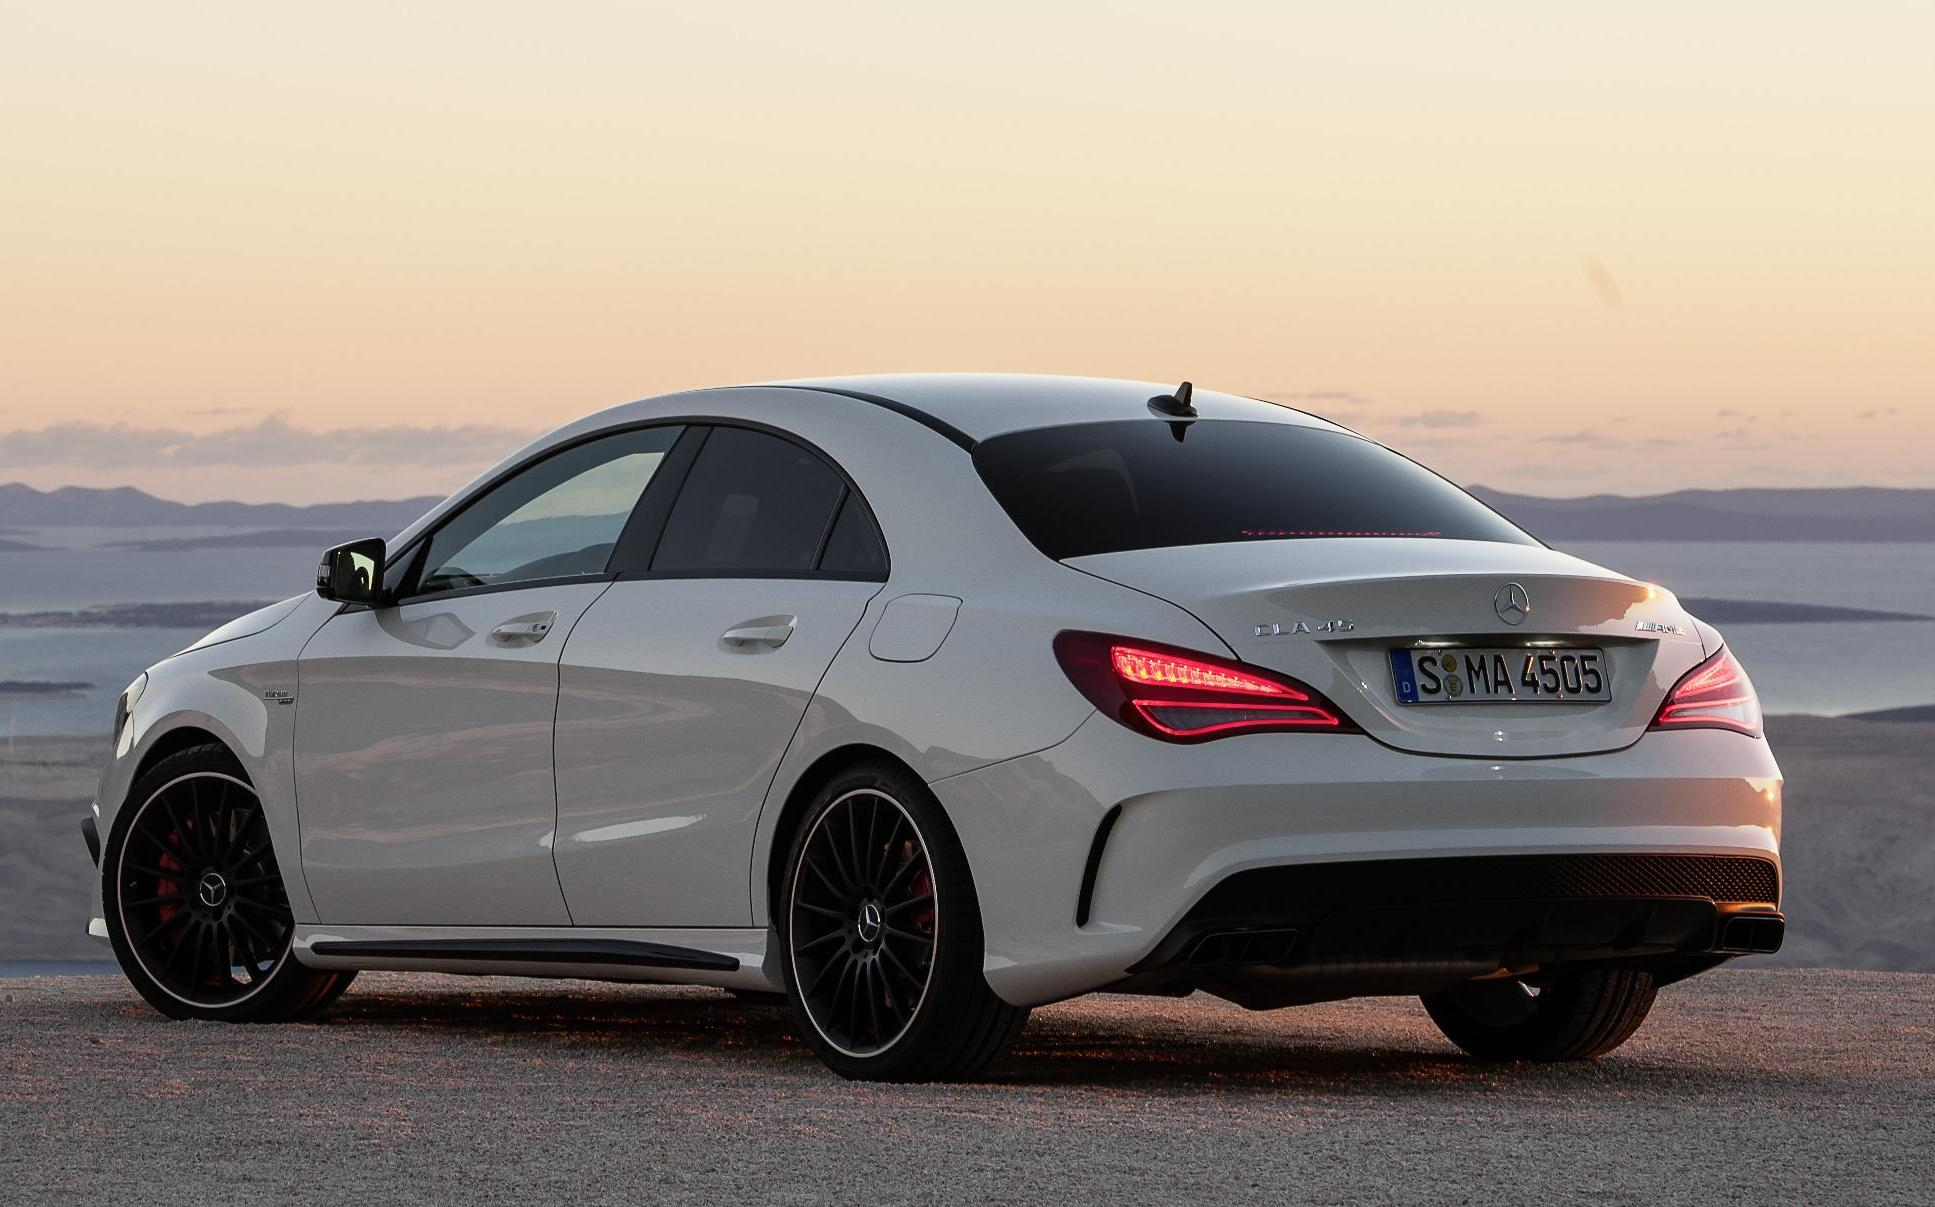 Mercedes benz cla 45 amg india launch on july 22 at bic for Benz mercedes cla